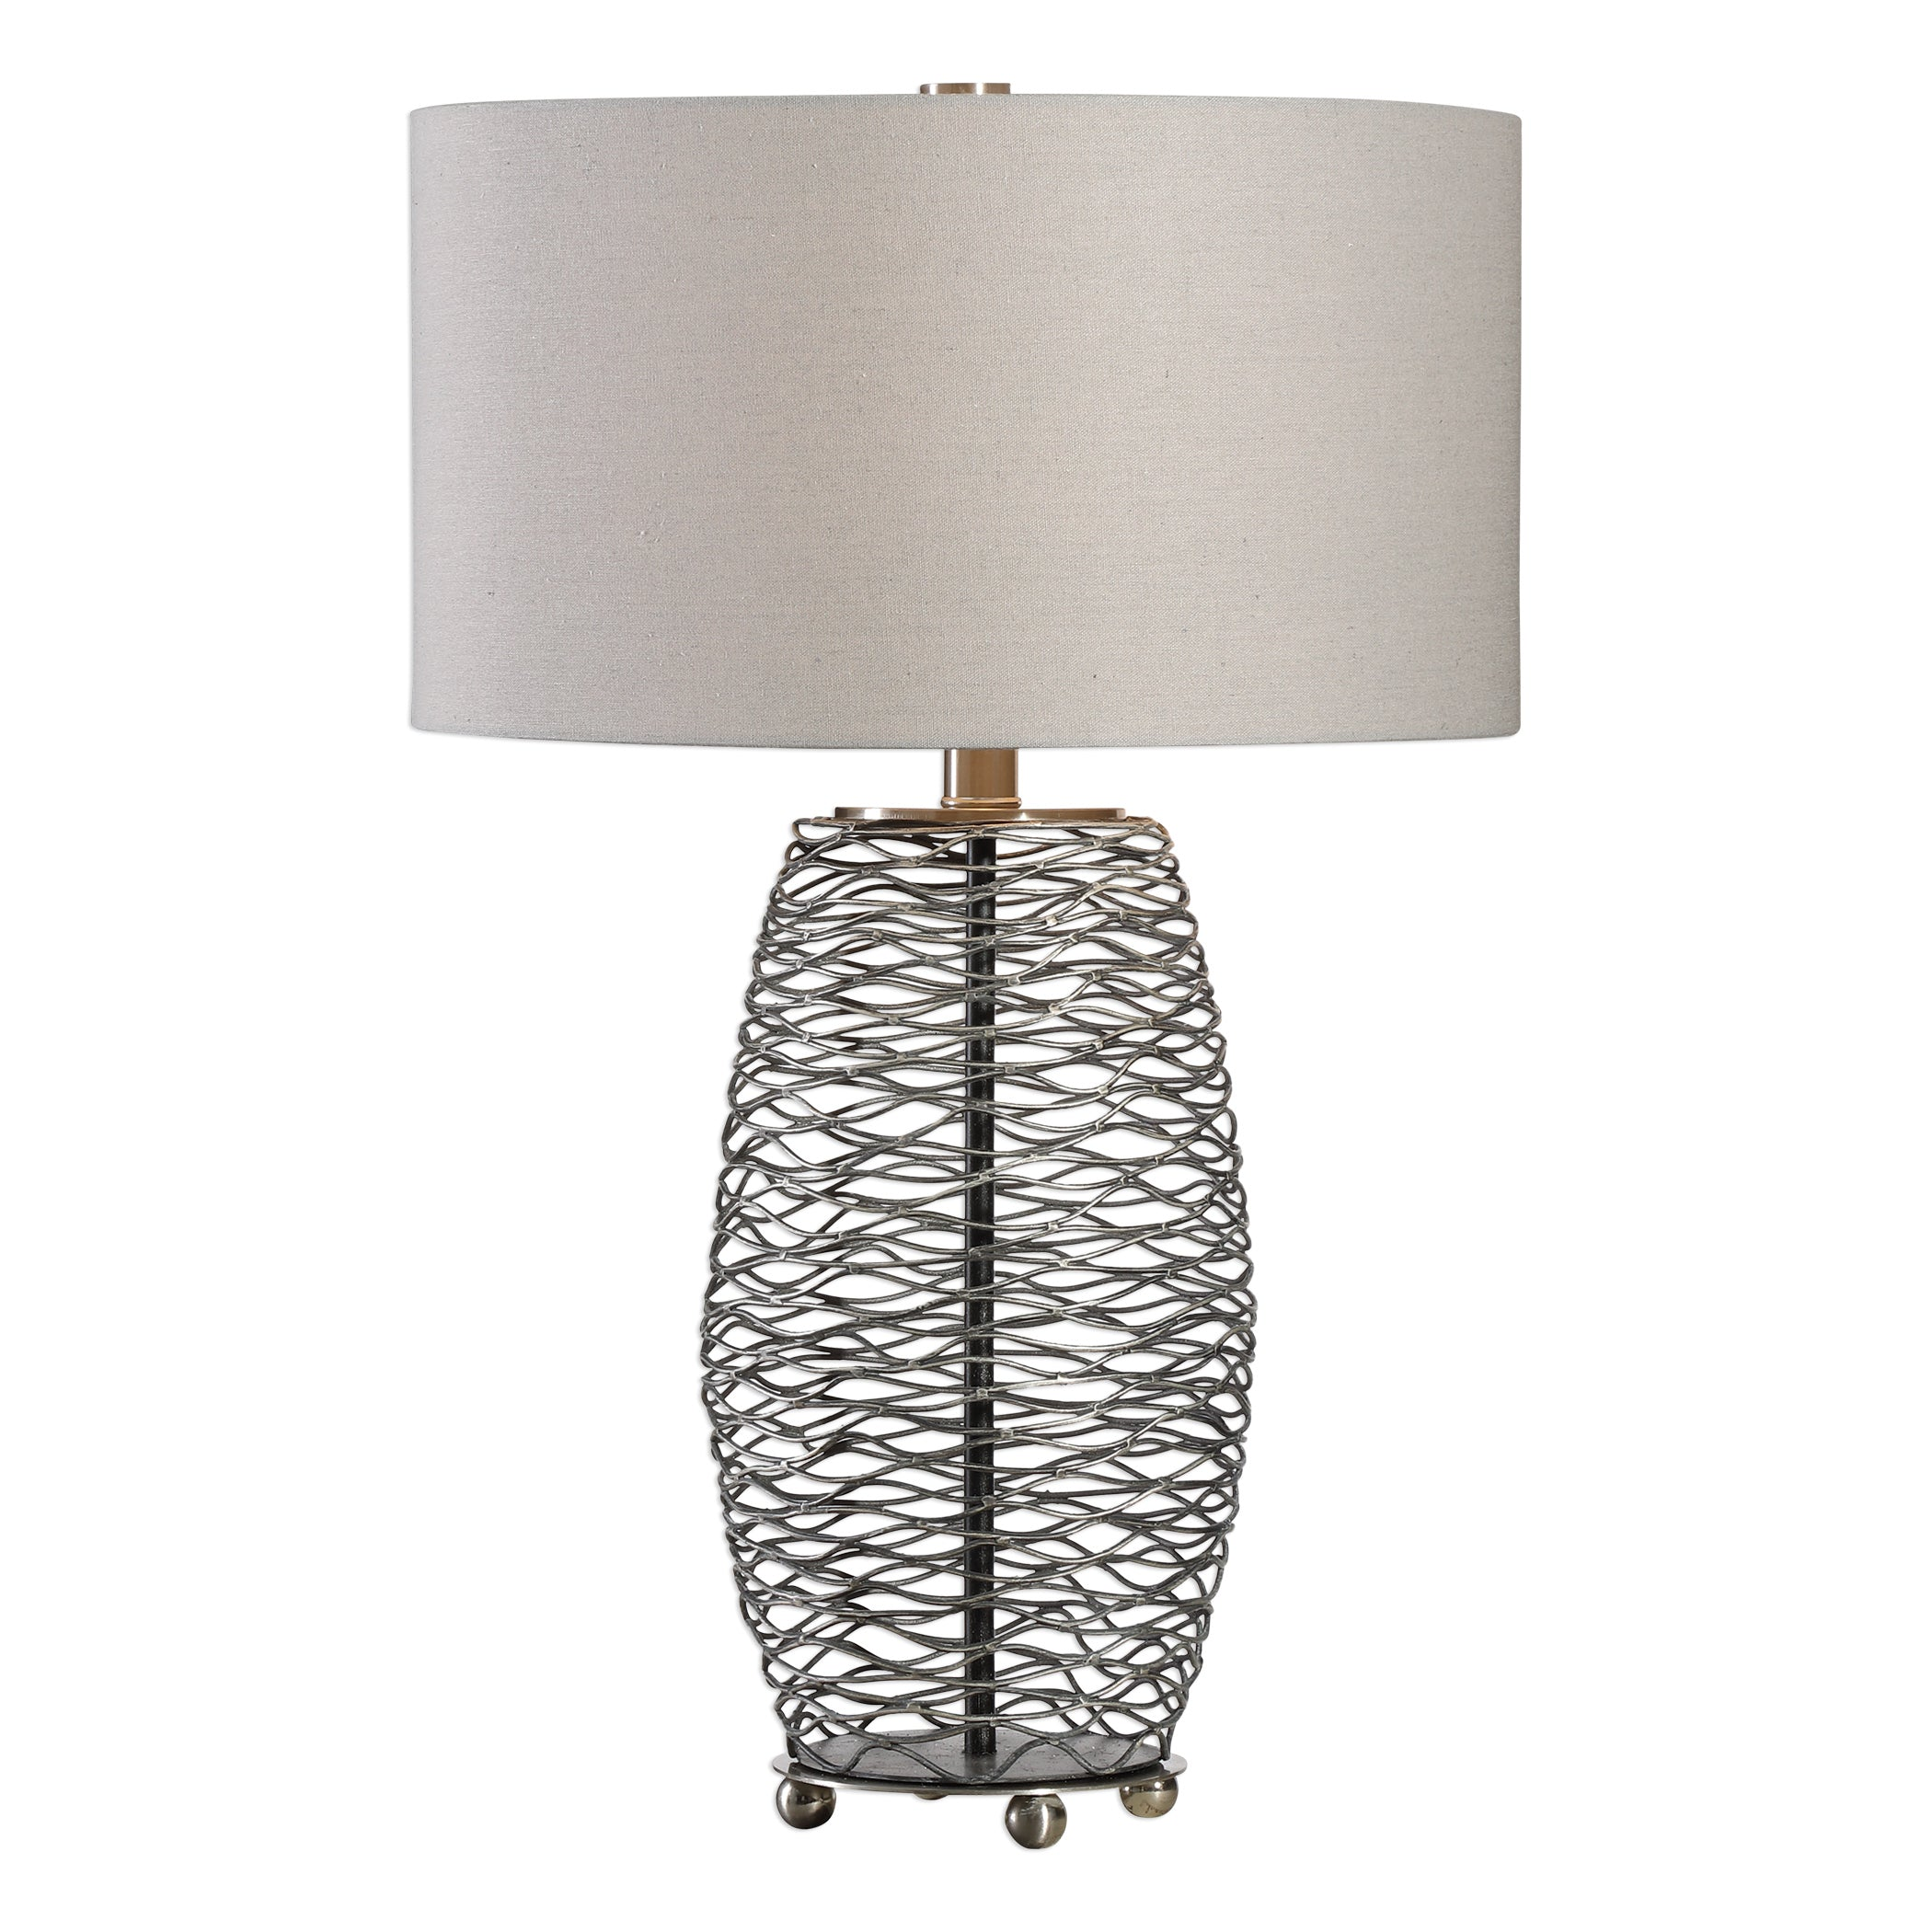 Uttermost 27768-1 Sinuous Wavy Steel Mesh Lamp